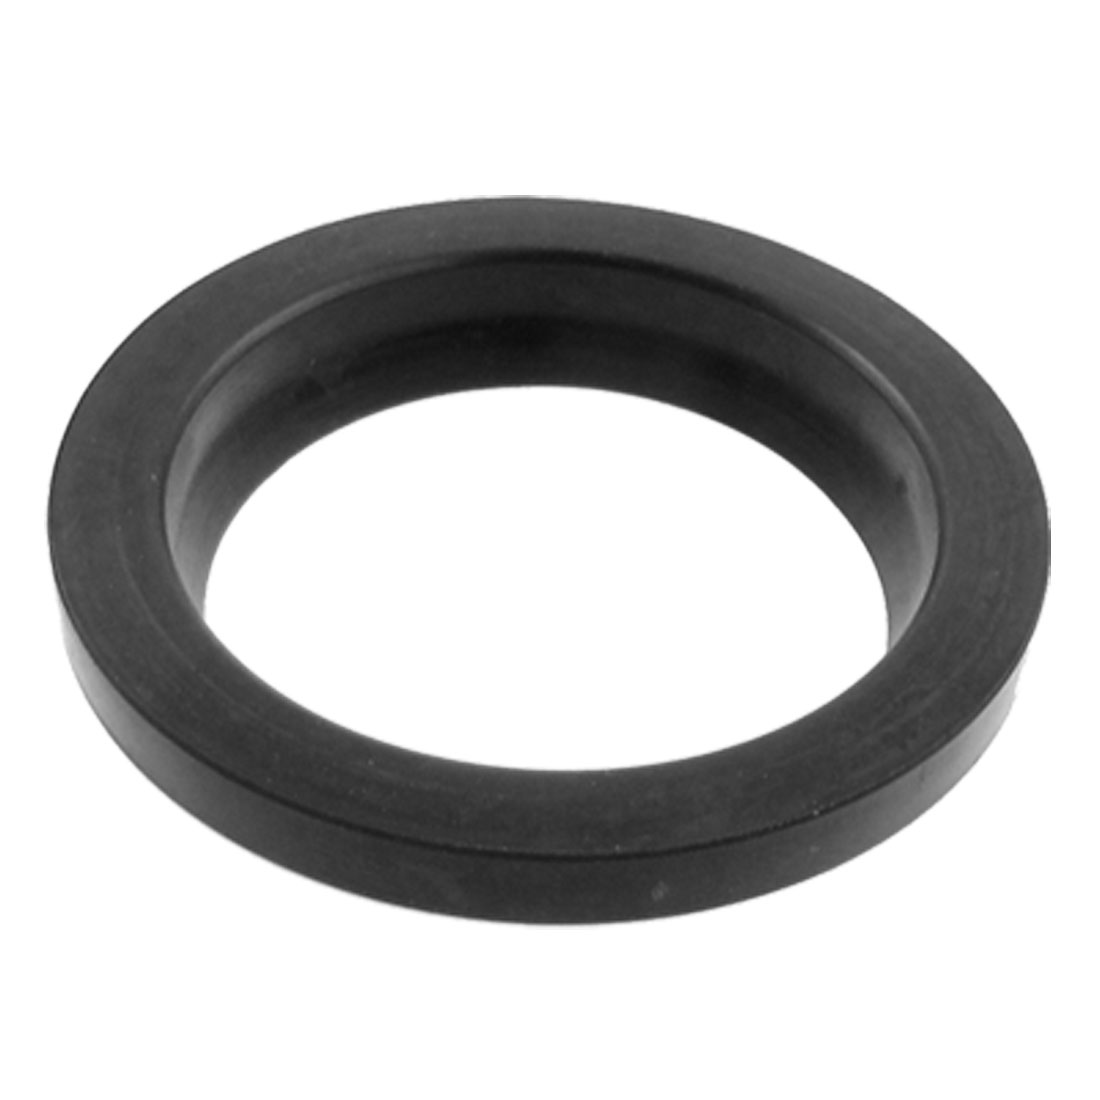 36mm x 48mm x 5mm x 9mm PU Dust Proof Shaft Oil Seal Black